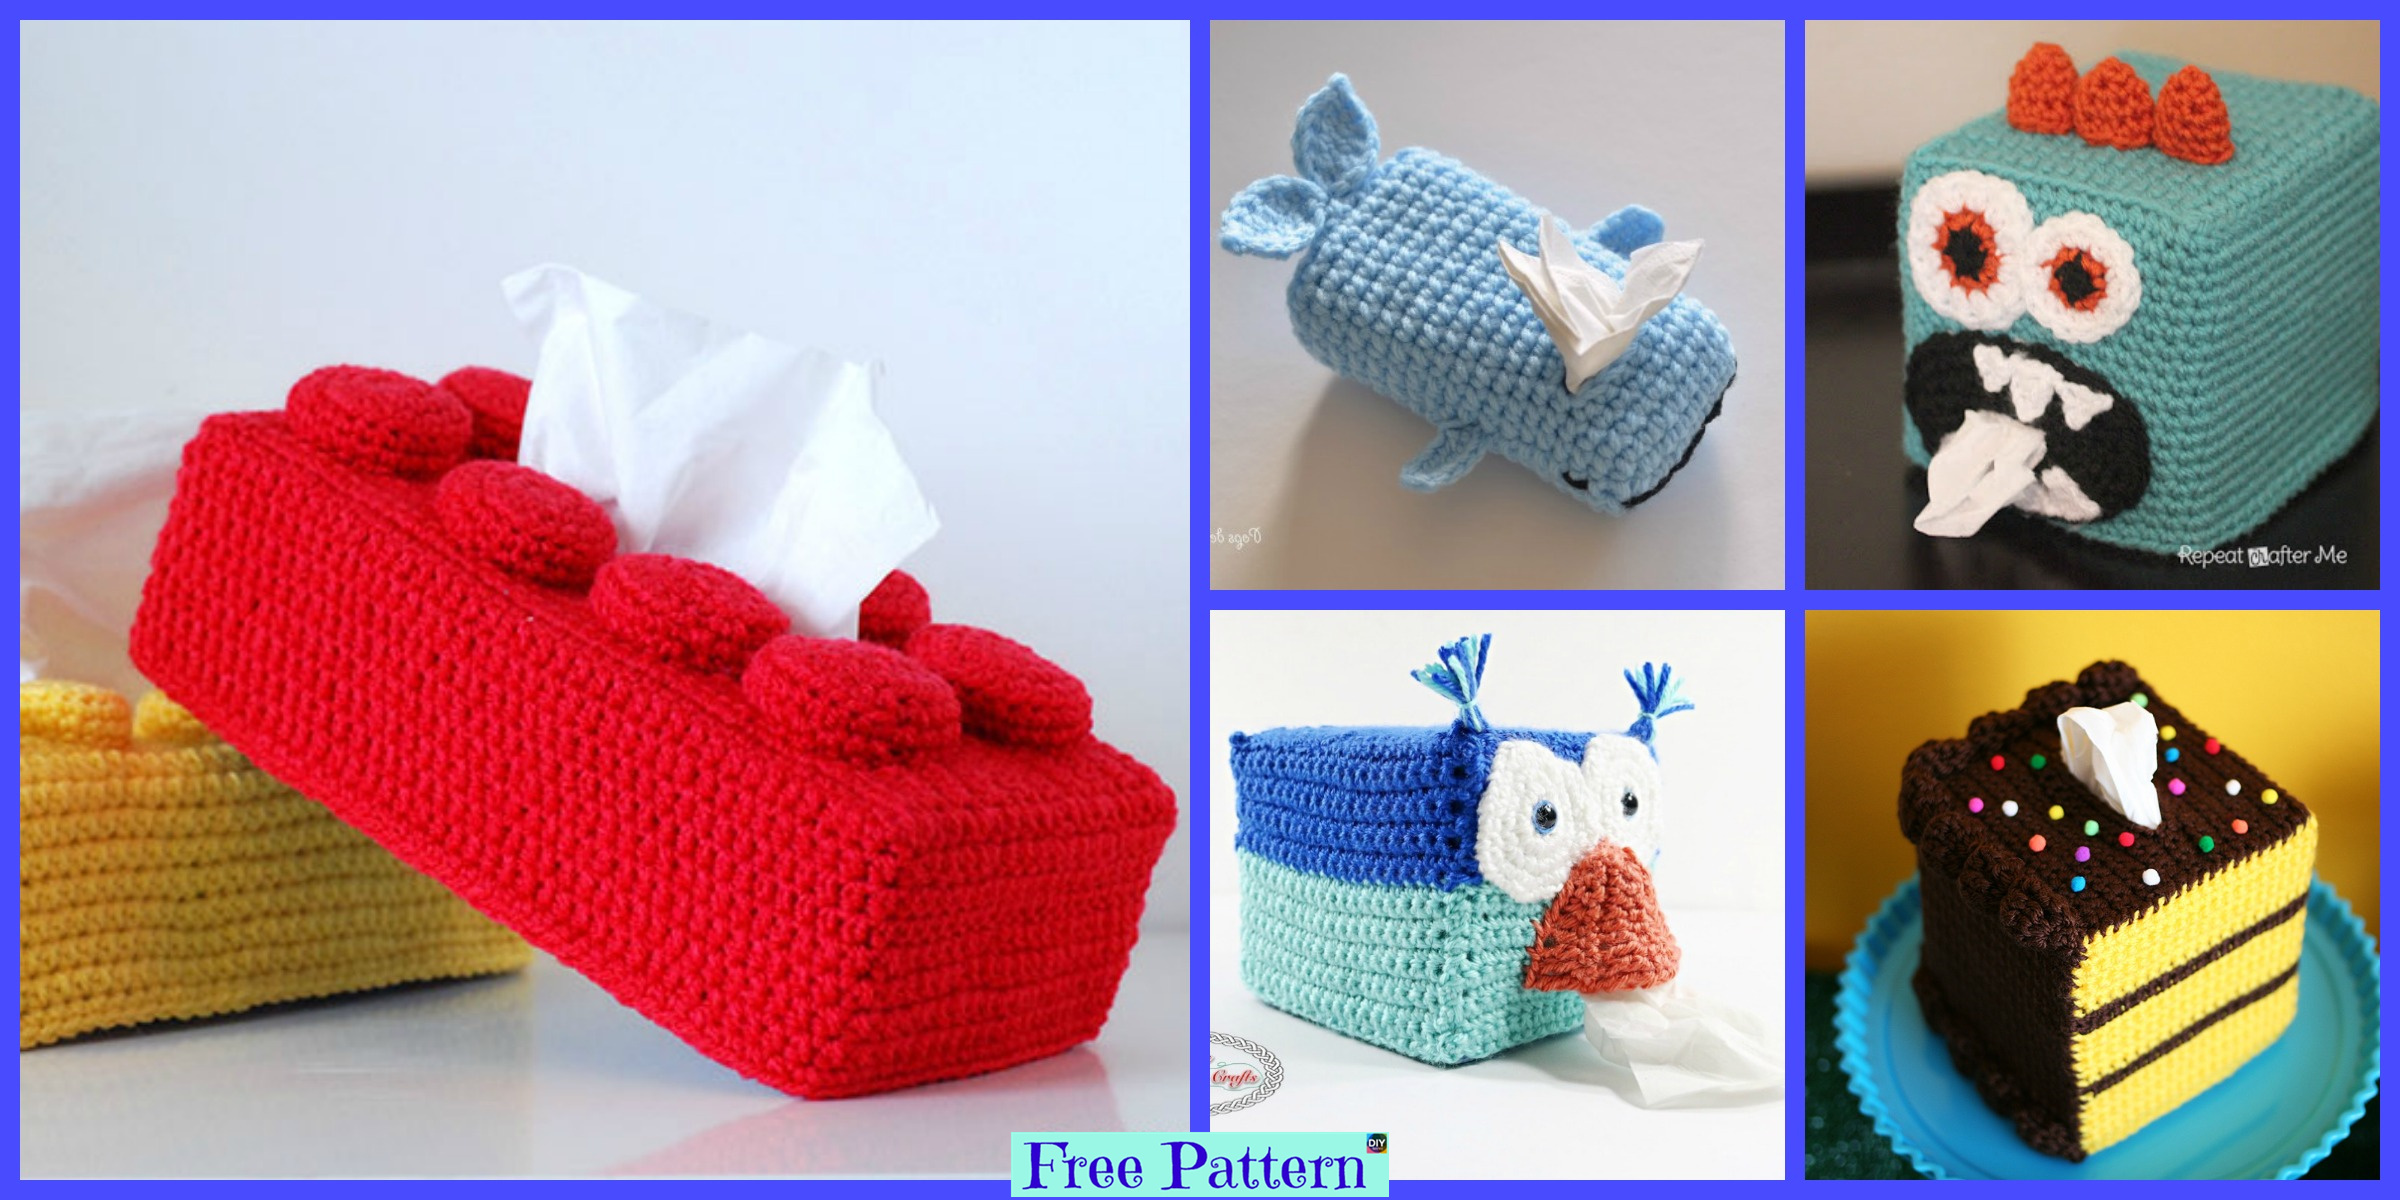 8 Crochet Tissue Box Cover Free Patterns